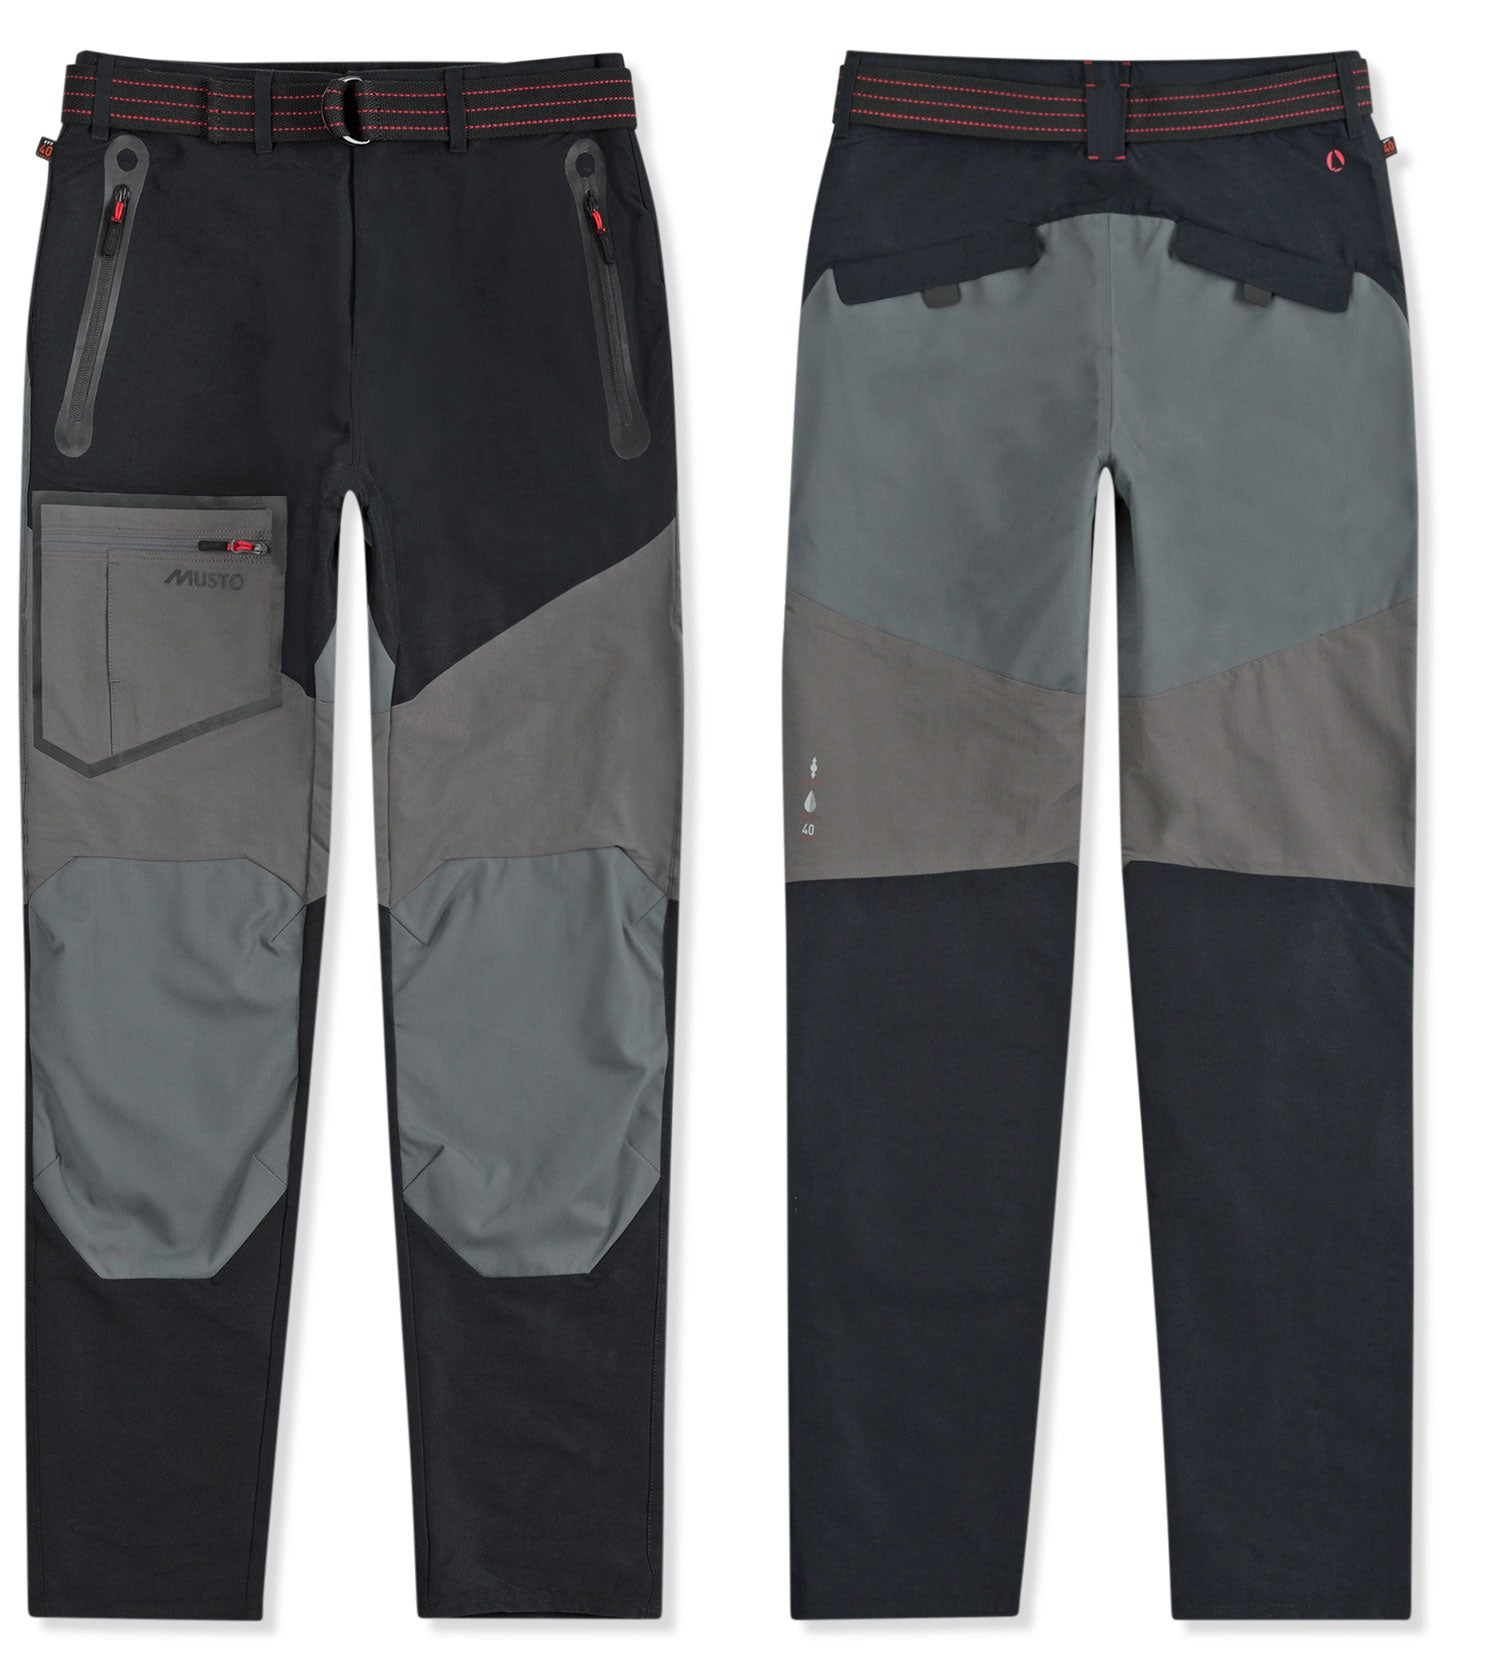 Black Musto Evolution Blade Technical Trousers